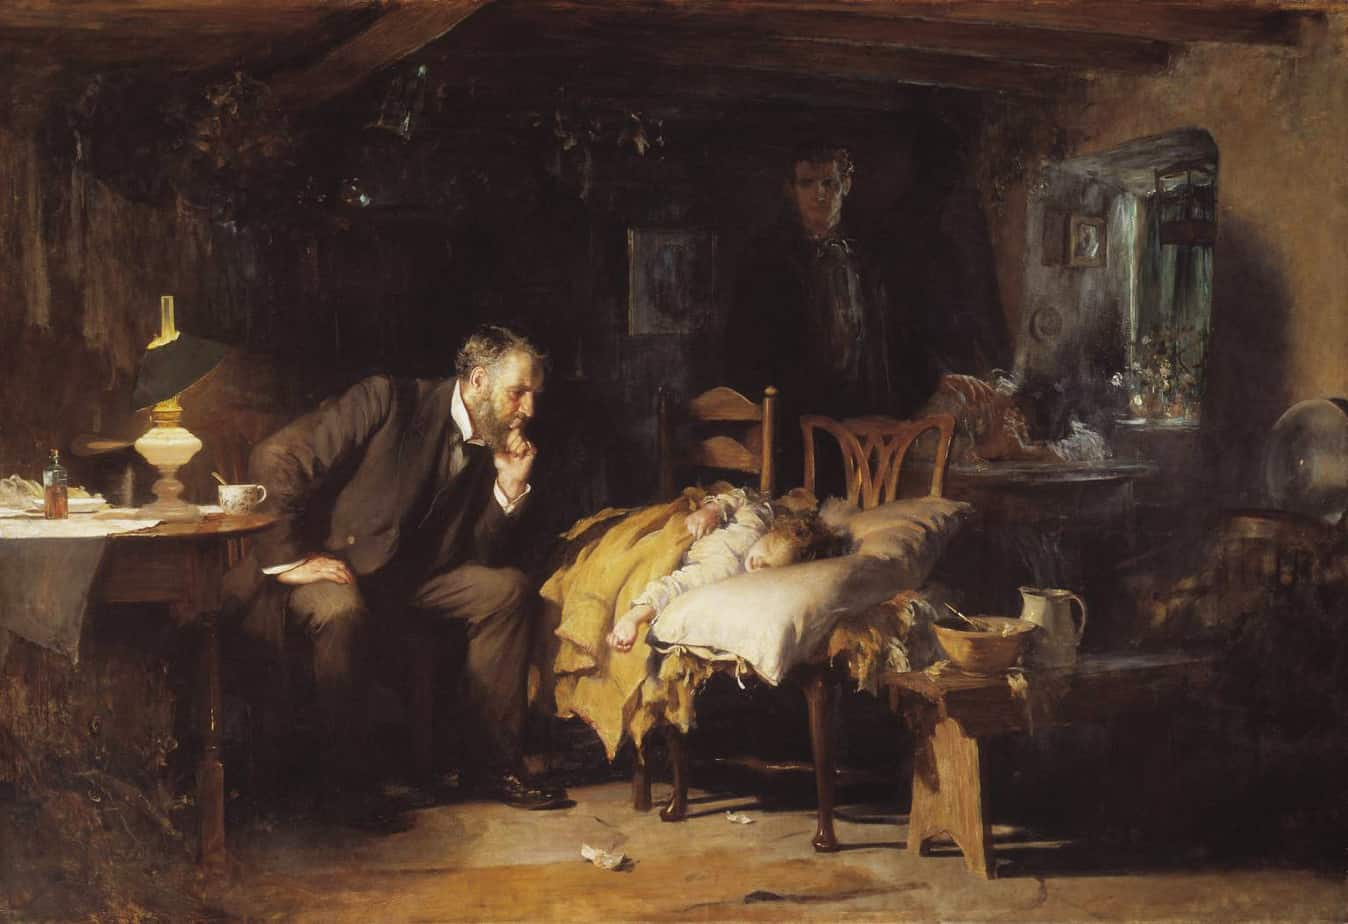 The Doctor exhibited 1891 Sir Luke Fildes 1843-1927 Presented by Sir Henry Tate 1894